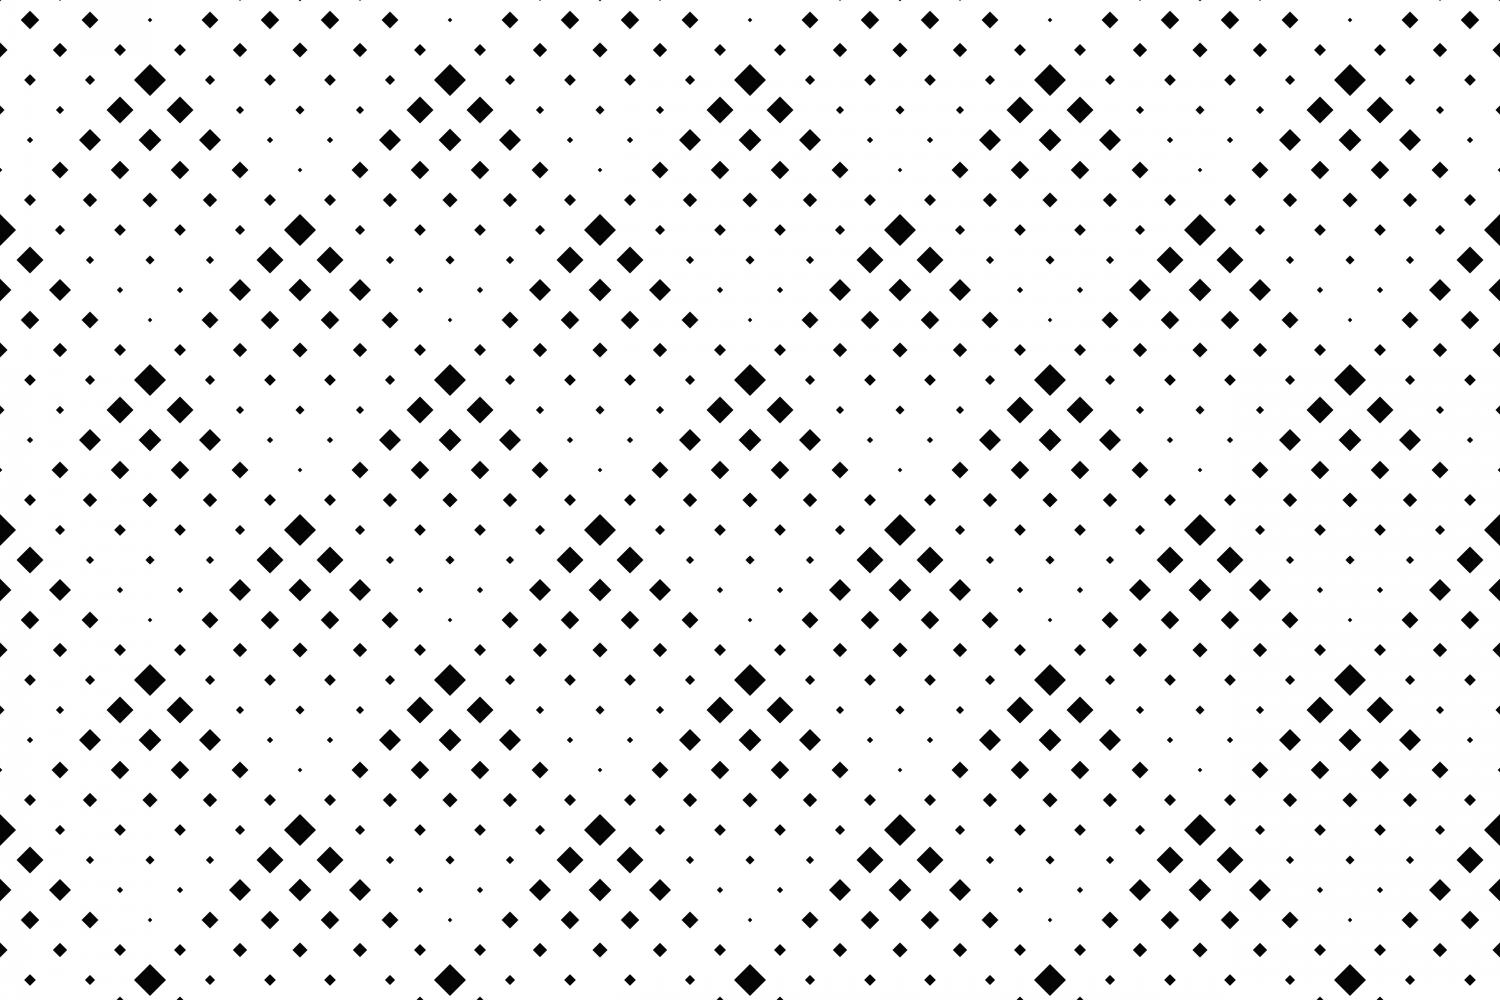 24 Seamless Square Patterns example image 3